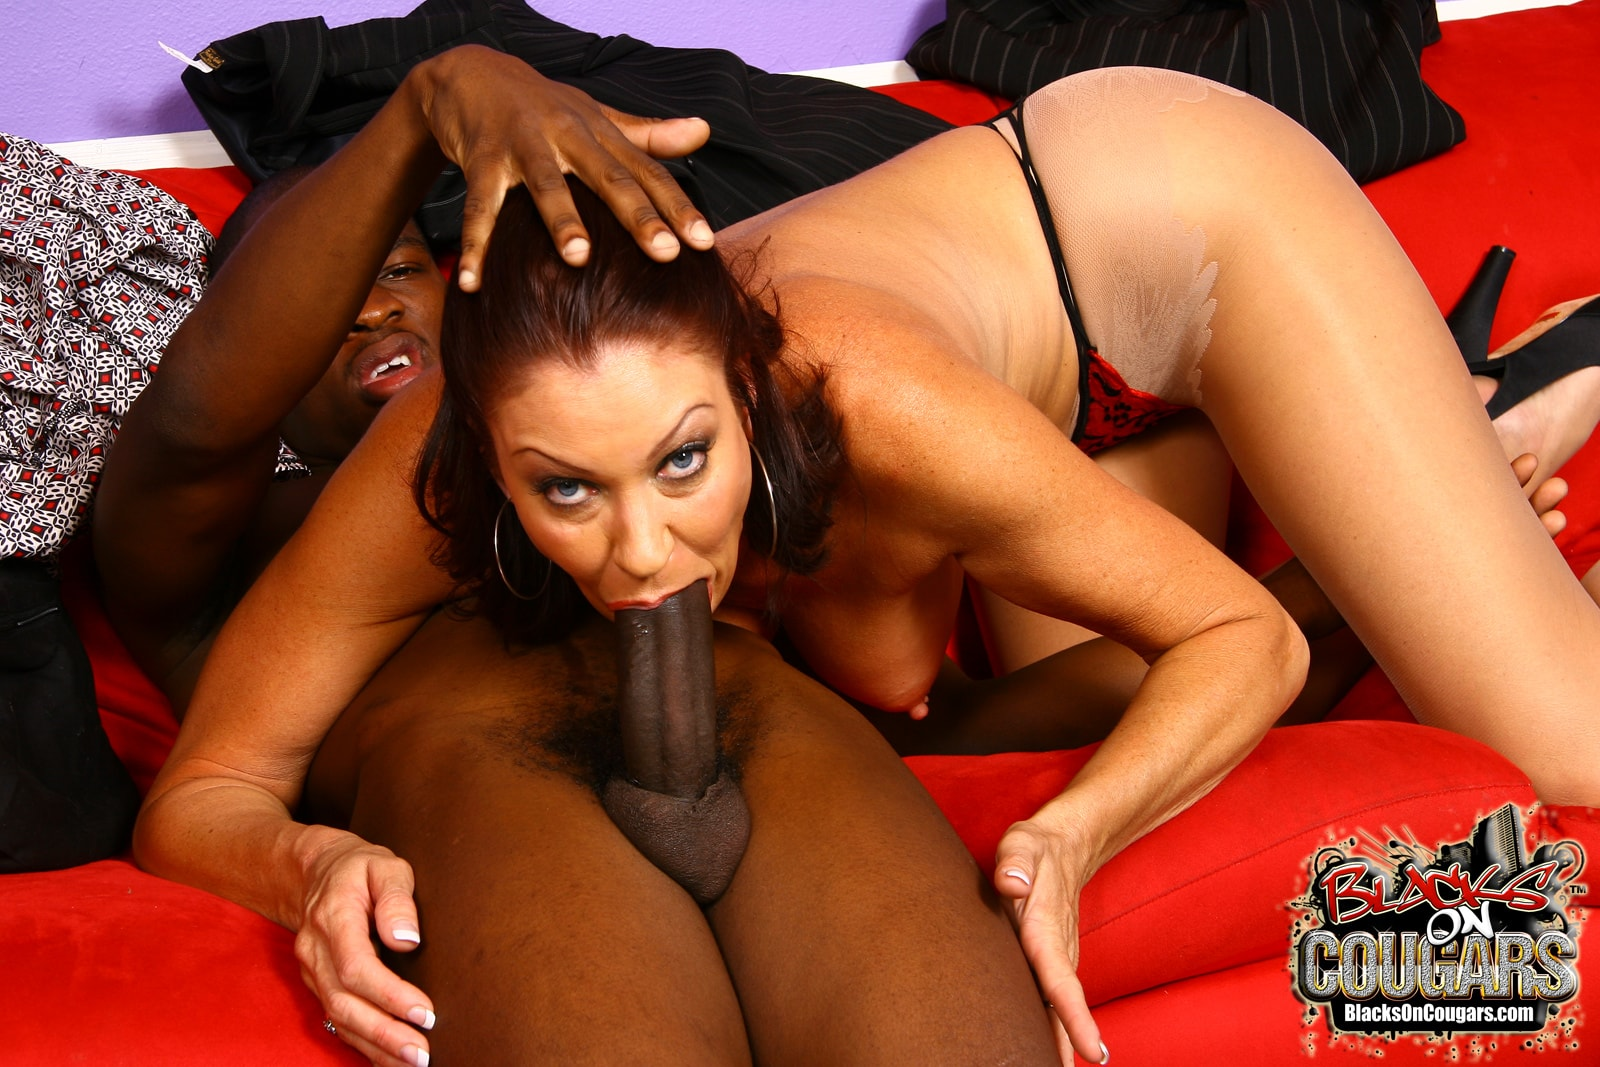 Dogfart '- Blacks On Cougars' starring Vanessa Videl (Photo 17)